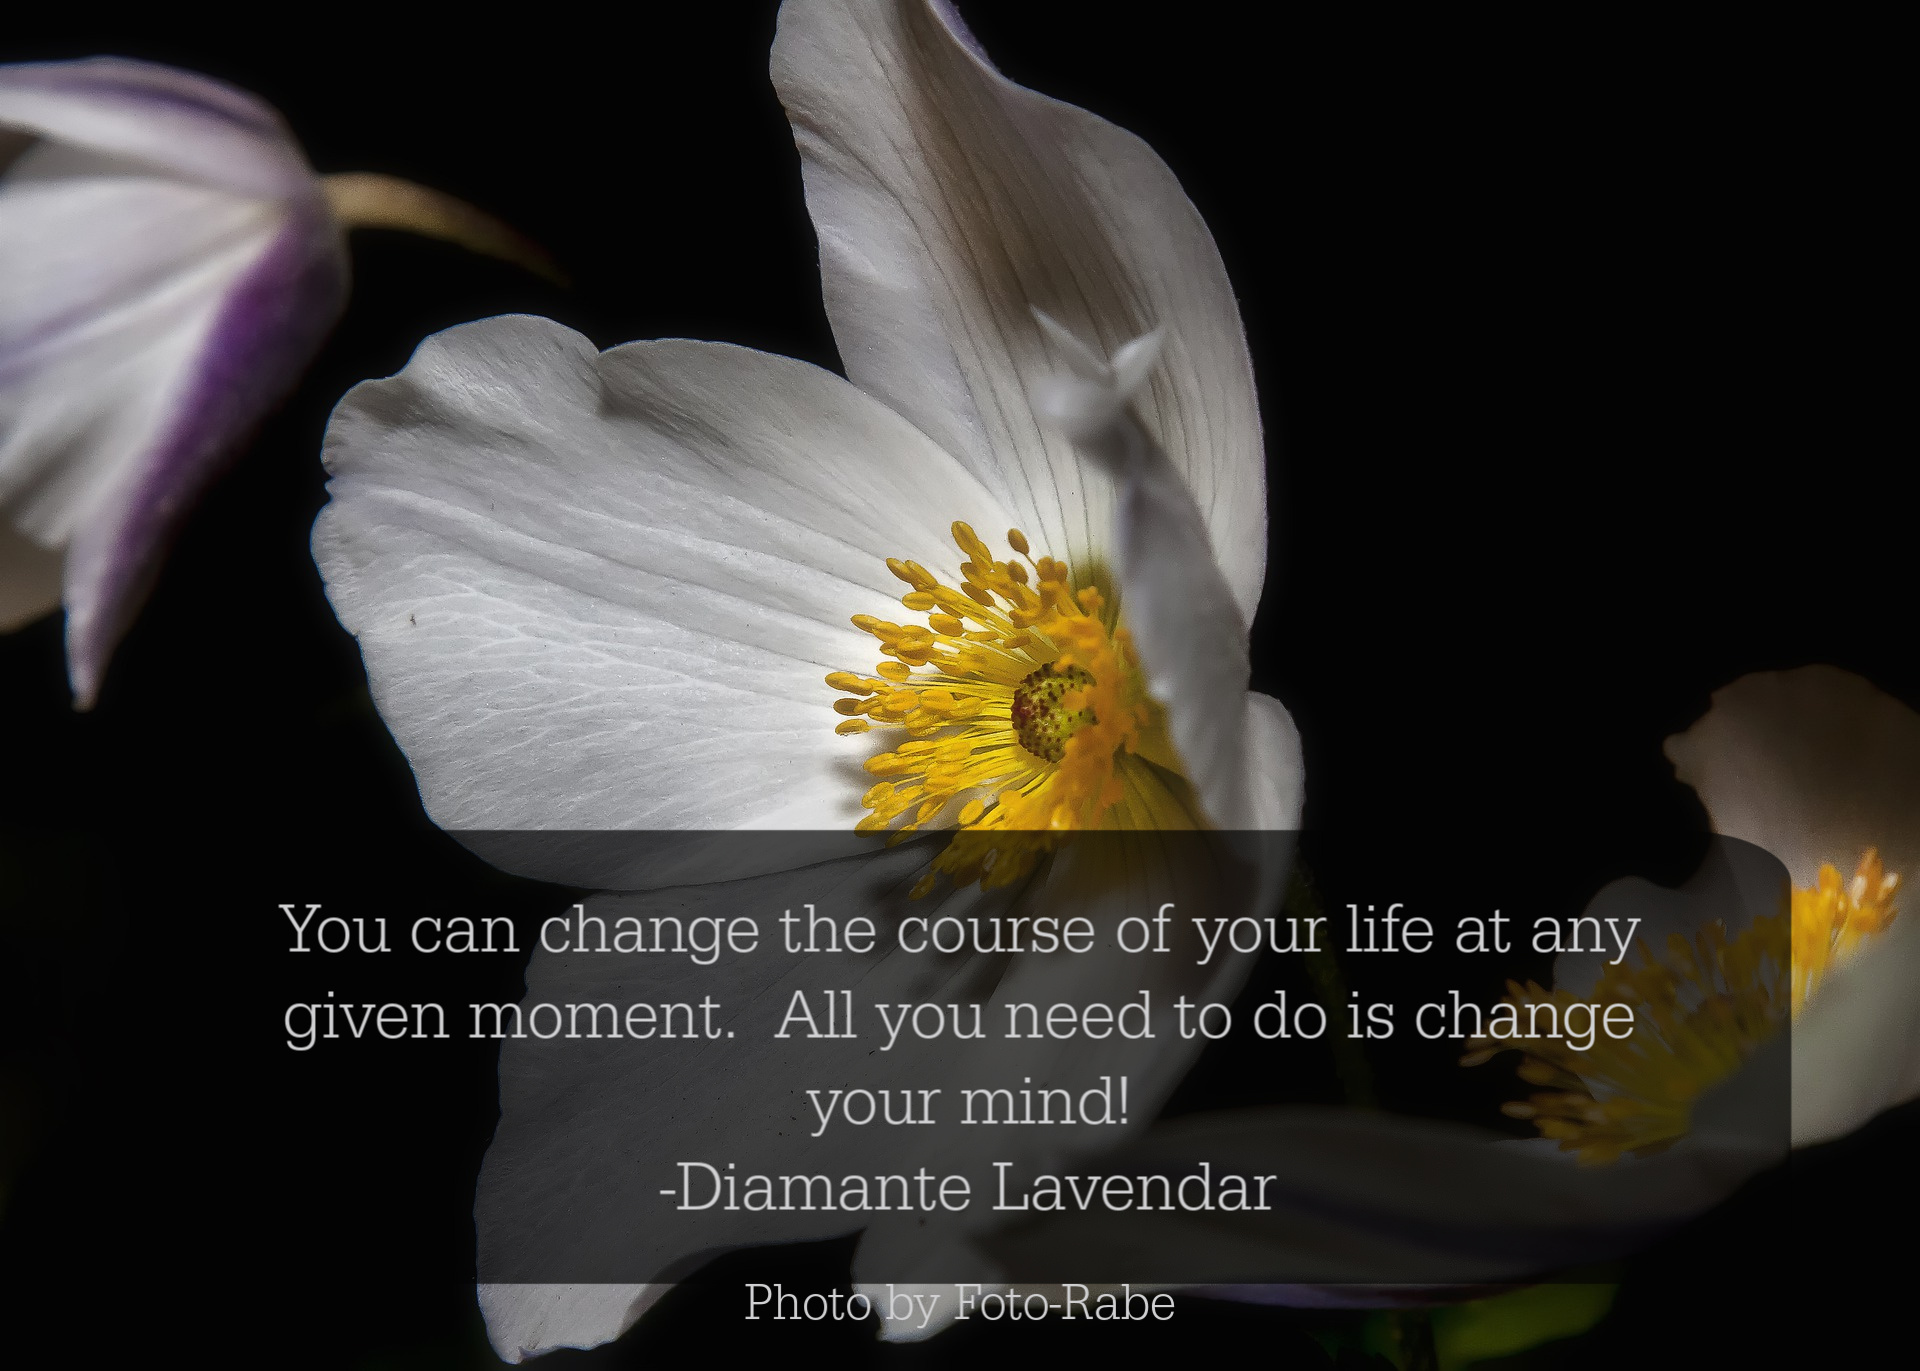 Change your mind quote by Diamante Lavendar.jpg